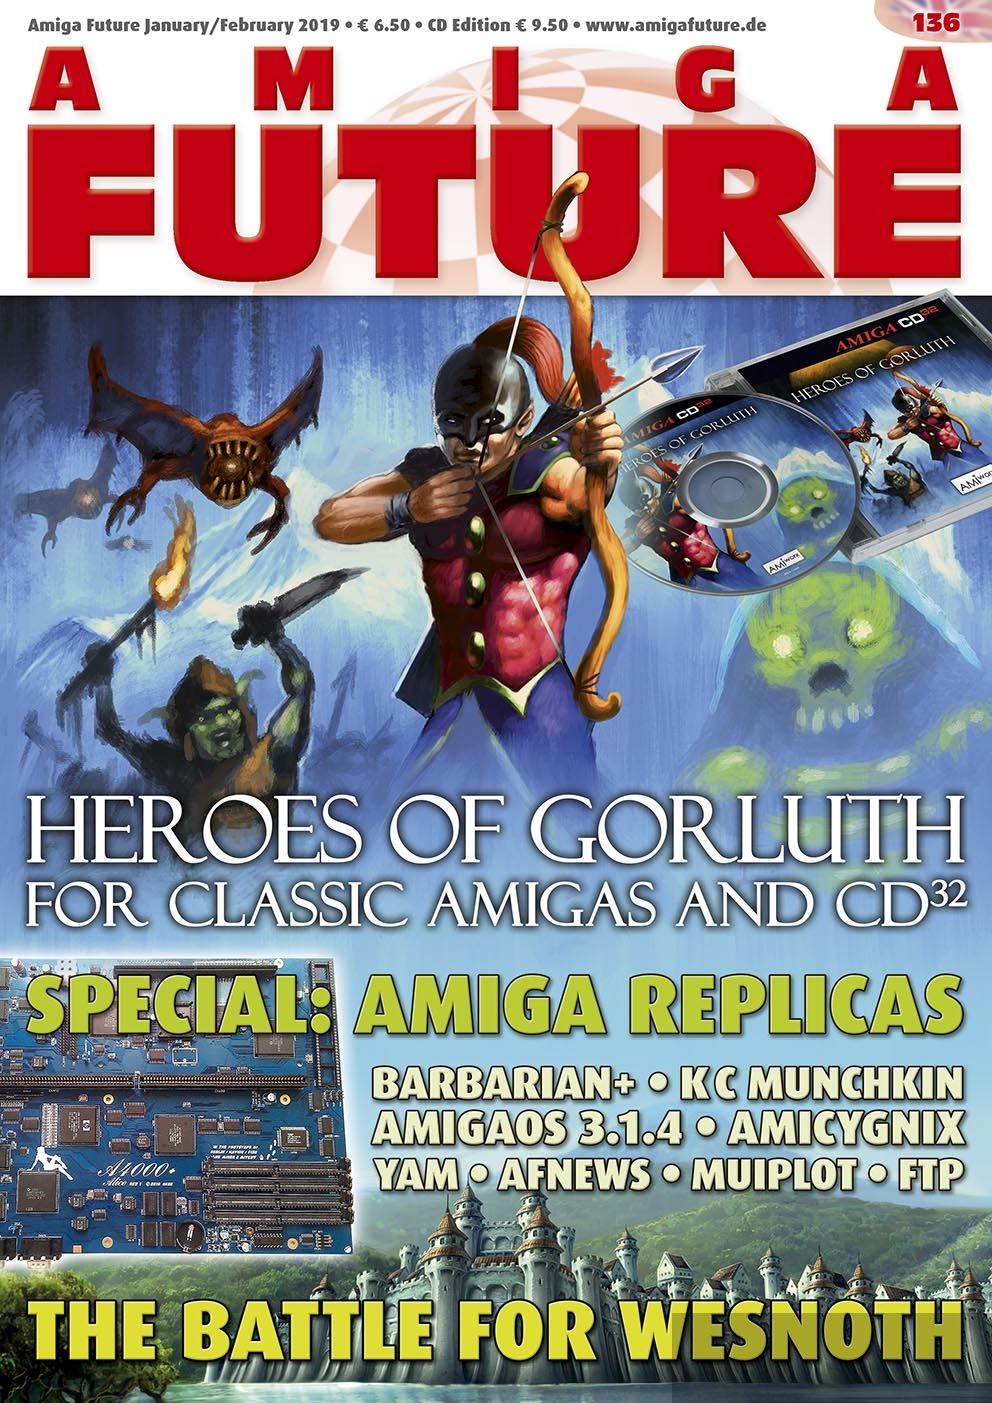 Amiga Future Issue 136 (English)